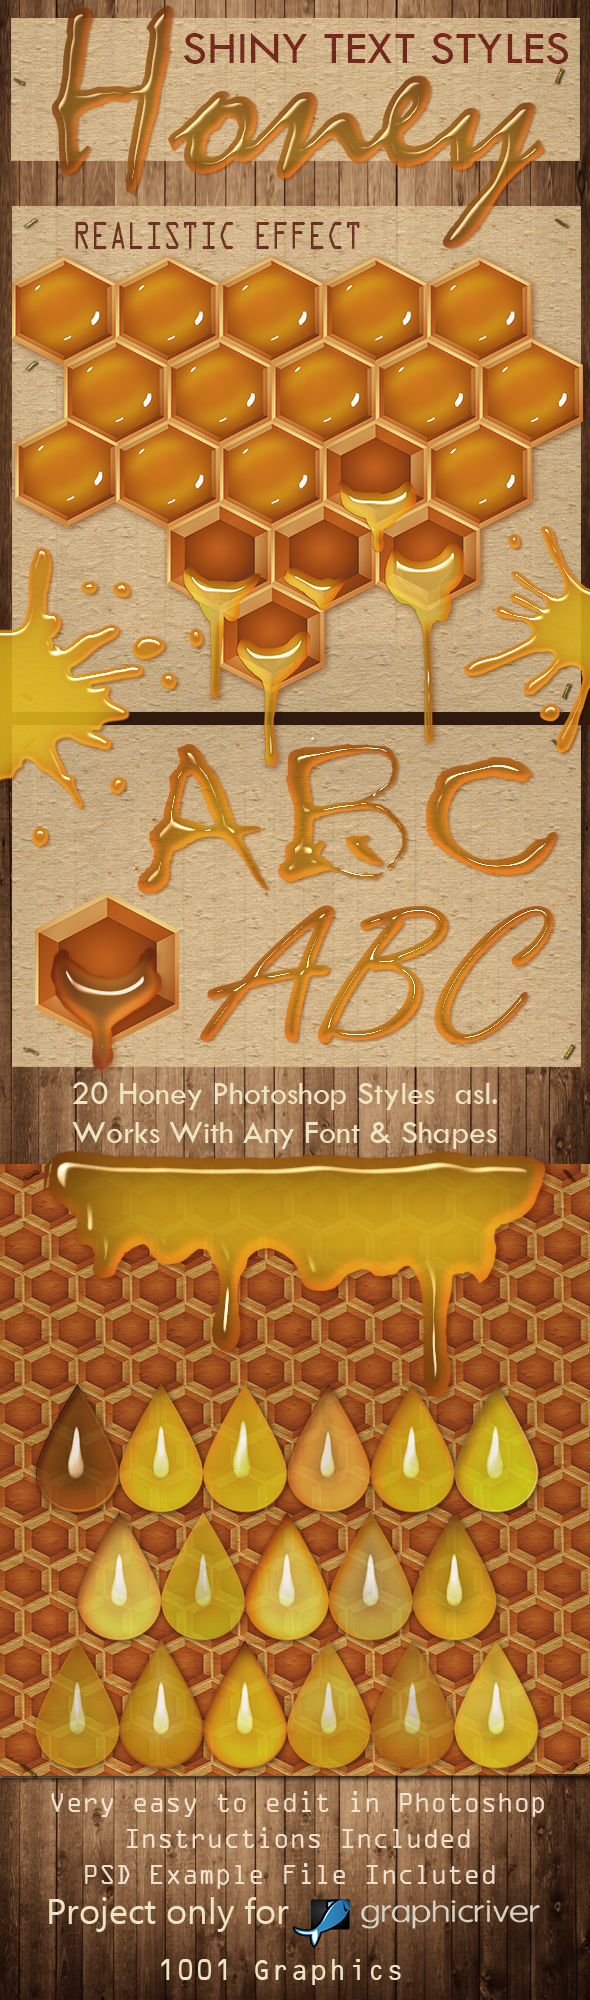 GraphicRiver 30 HoneyText Effect PS Styles asl.- Full Pack 20422546